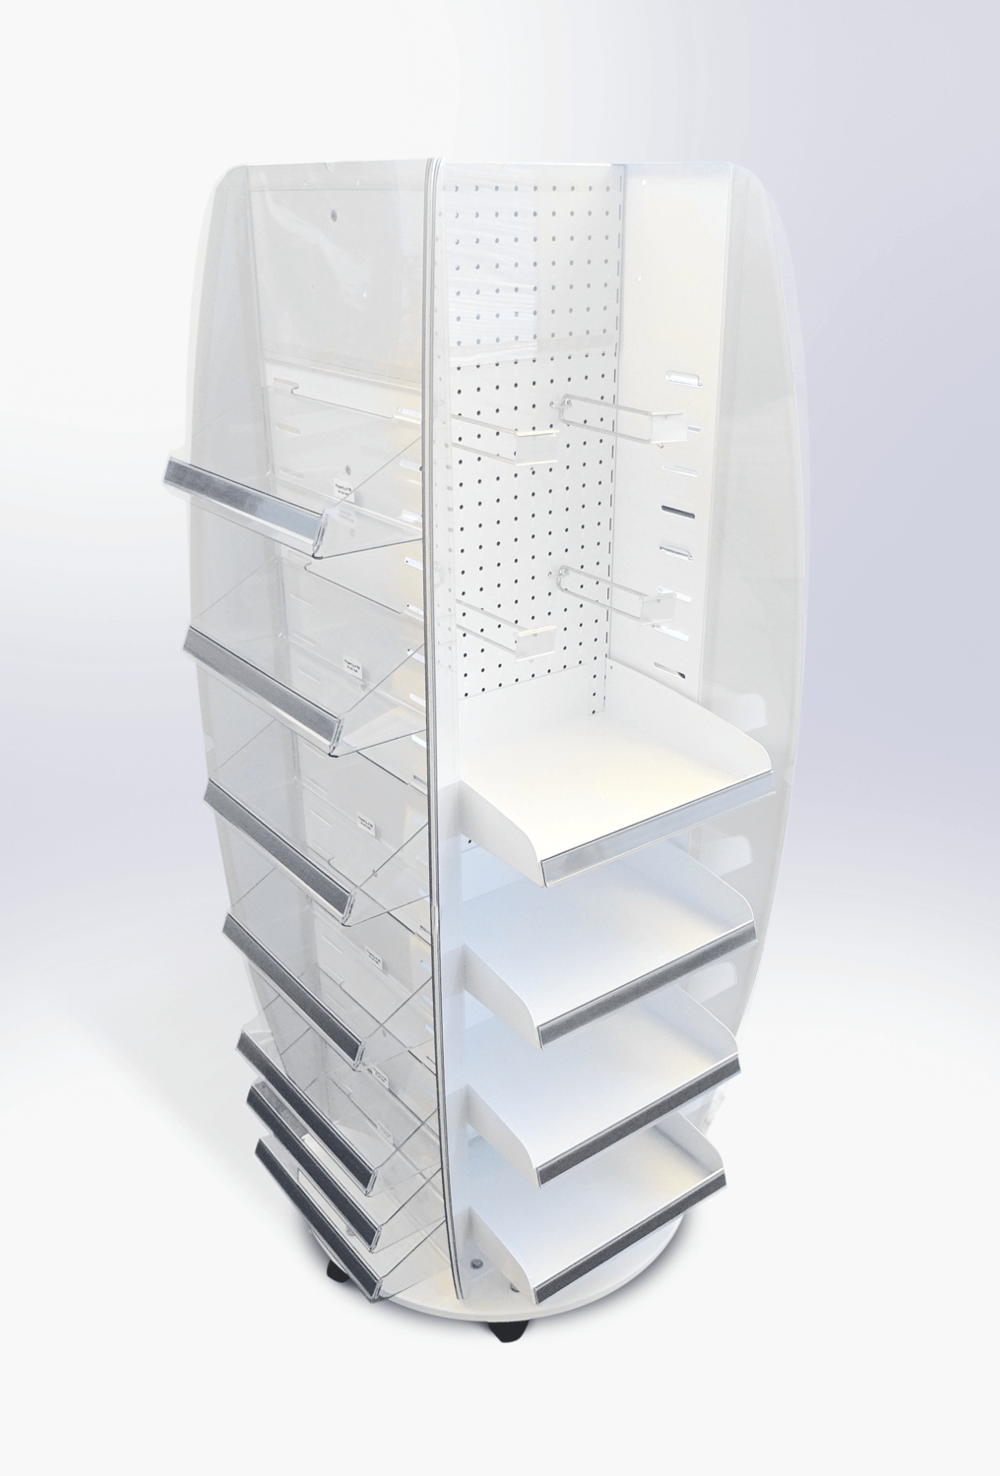 4 Sided Spinner Stand with a mixture of shelves and prongs and changeable graphic areas Display design and manufacture | Visuals | Pack and despatch